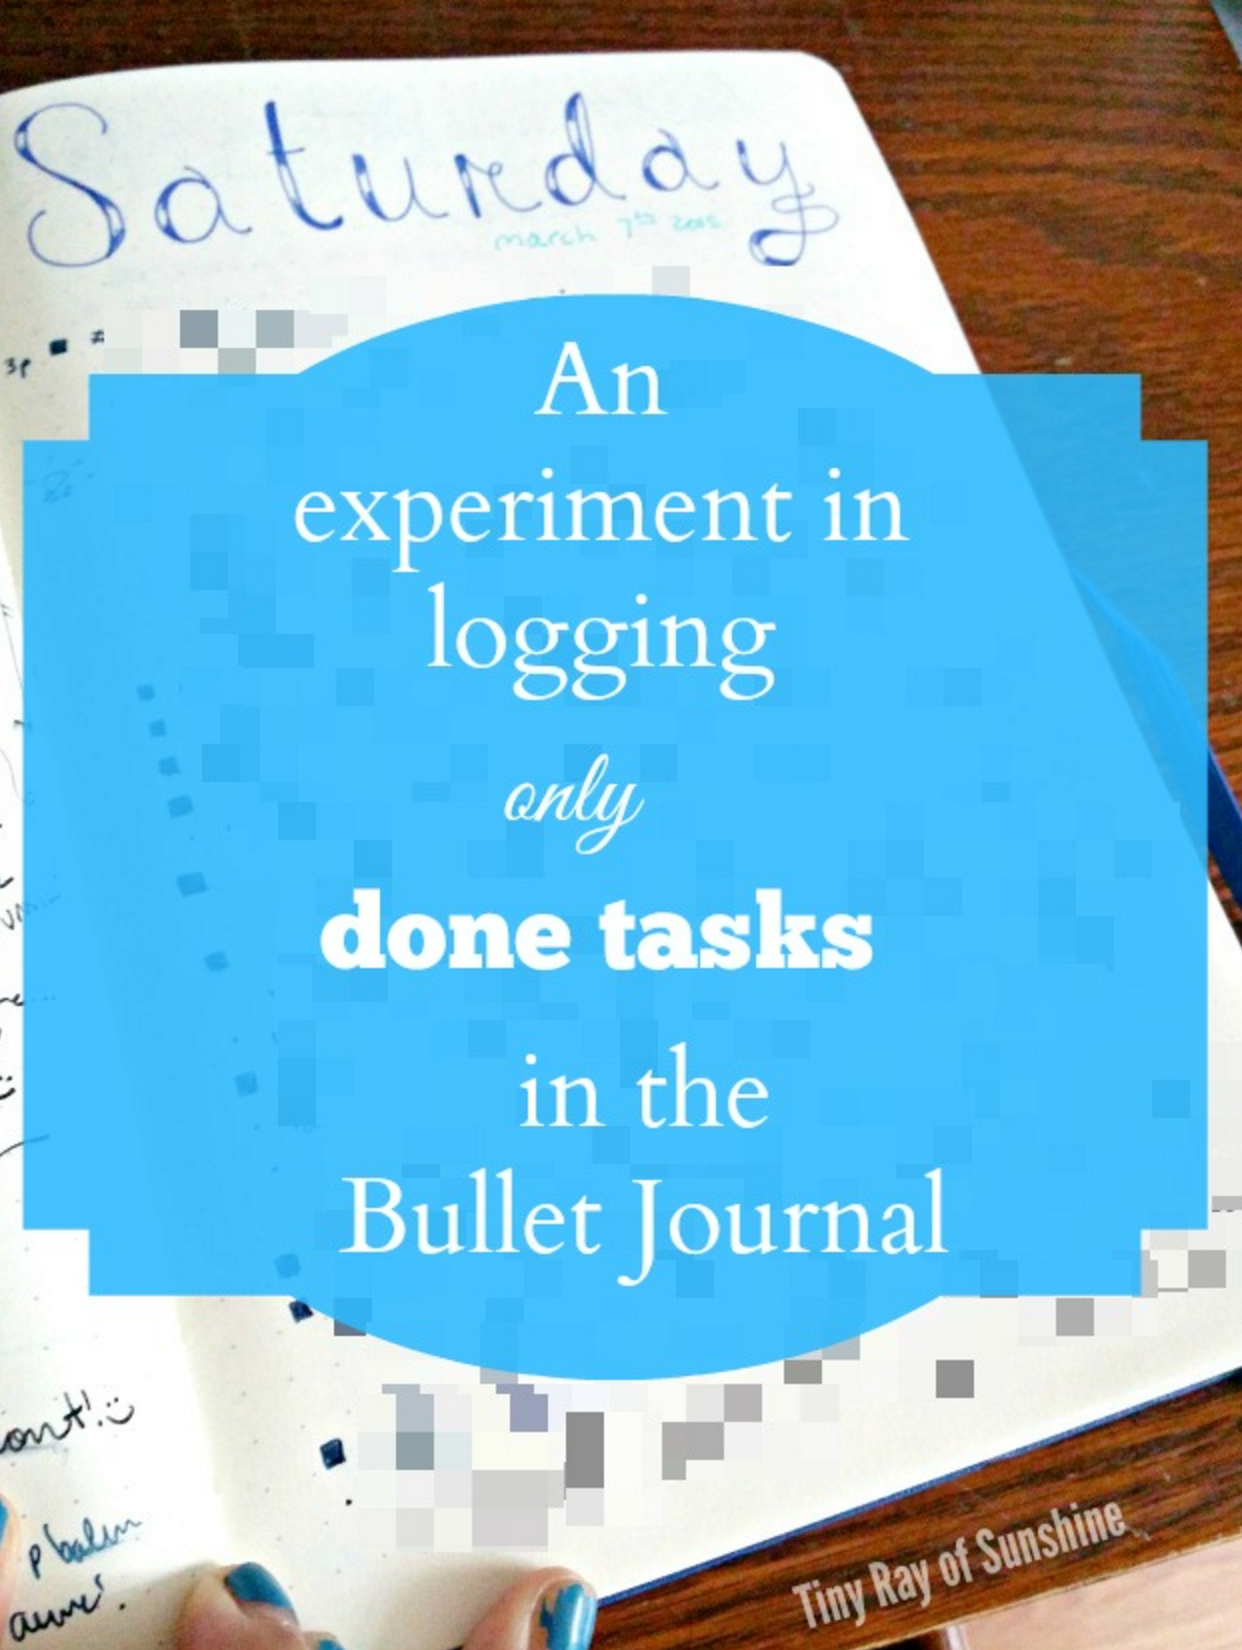 a n experiment in logging only done tasks in the bullet journal